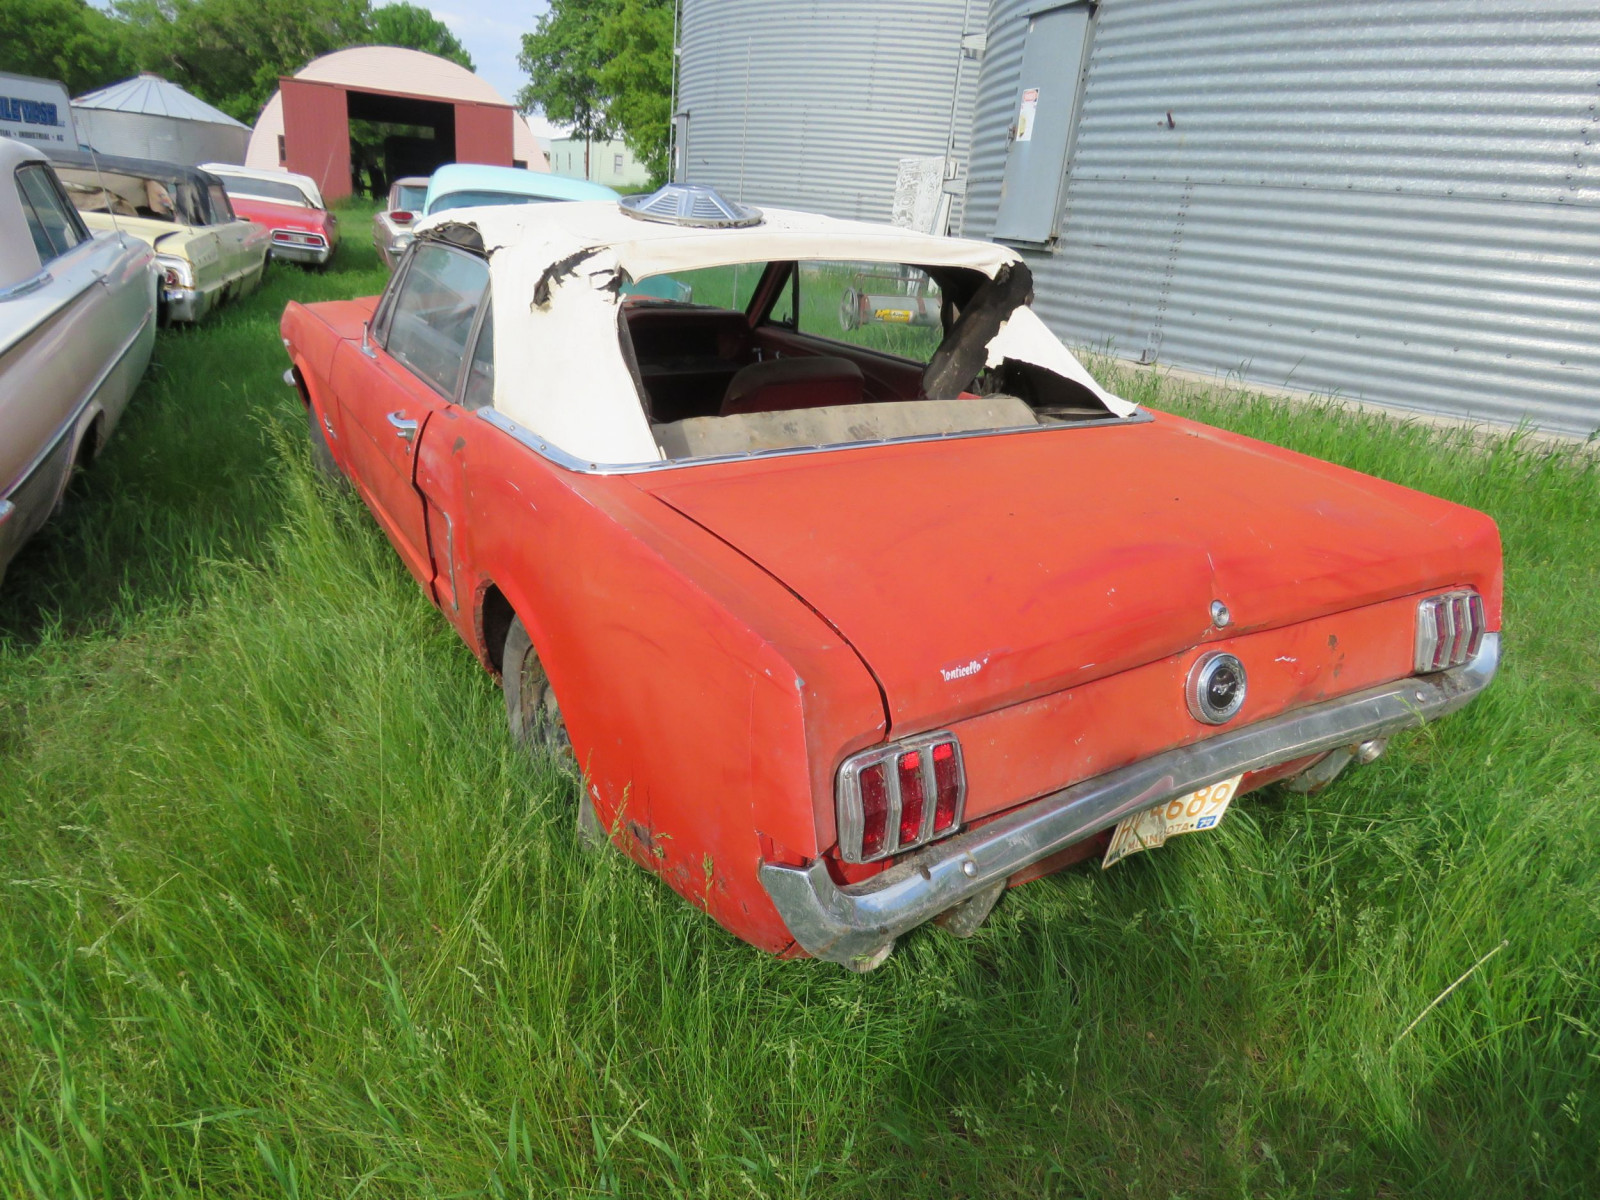 1965 Ford Mustang Convertible - Image 4